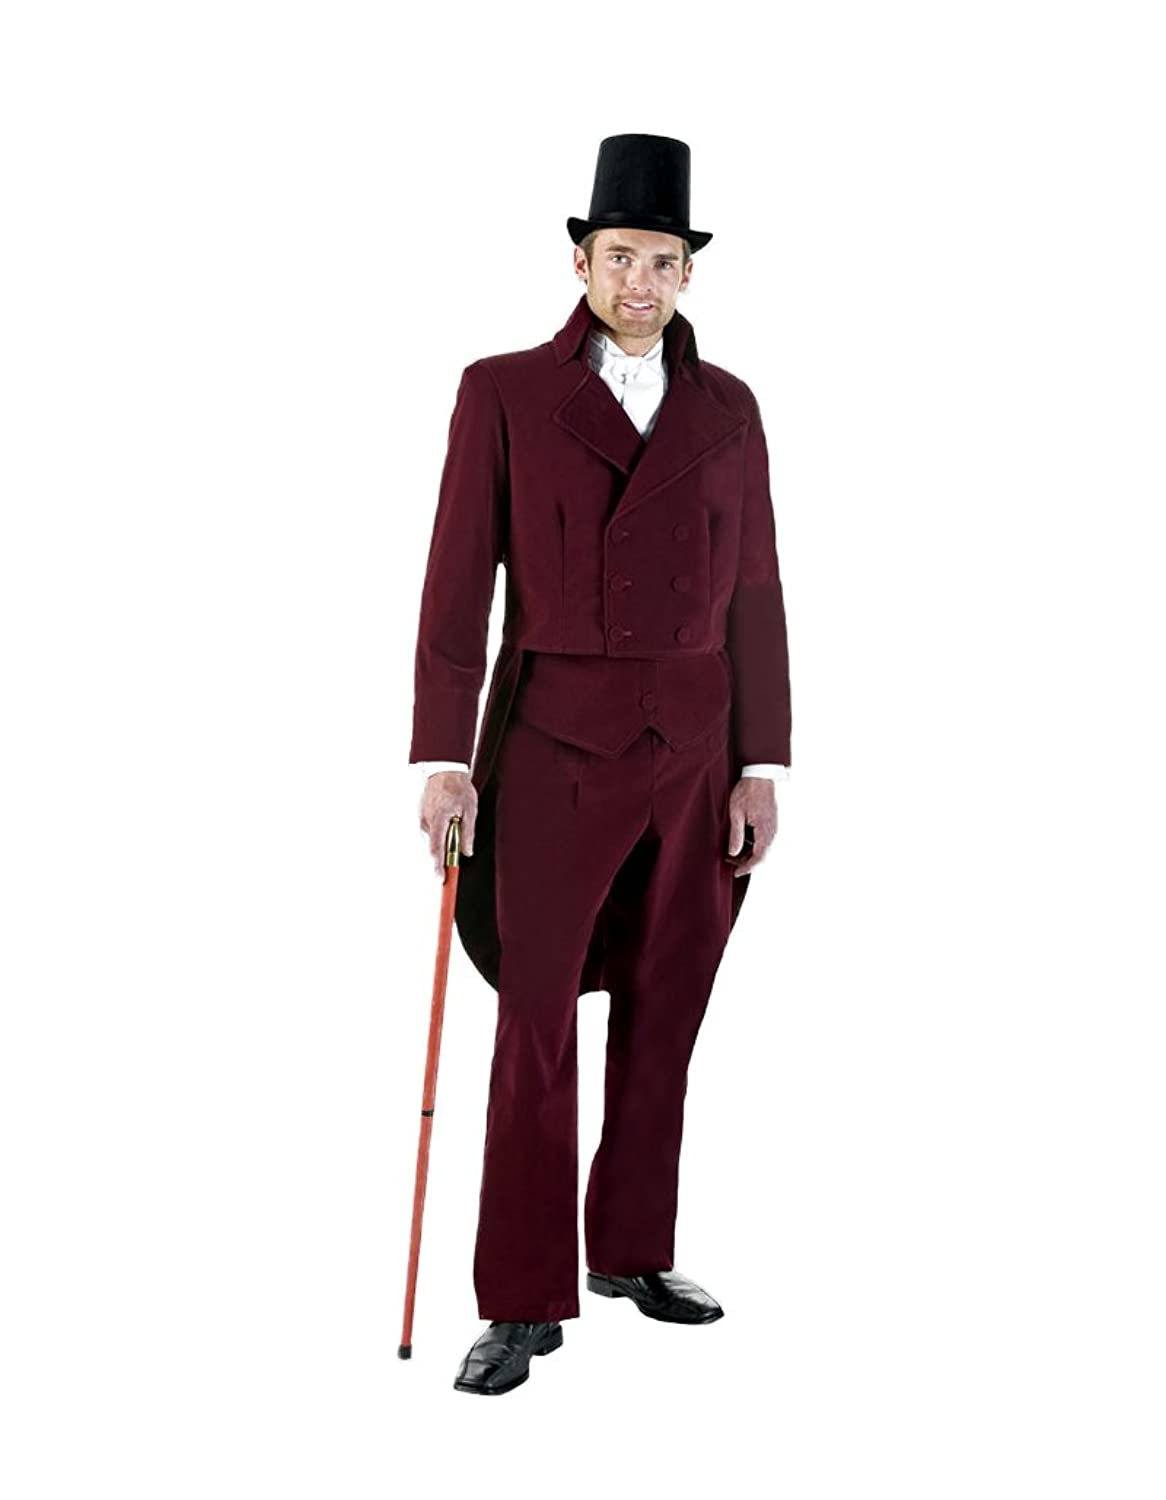 Victorian Men's Costumes: Mad Hatter, Rhet Butler, Willy Wonka Tabis Characters Mens Charles Dickens Caroler Tail Suit Theater Costume $359.99 AT vintagedancer.com